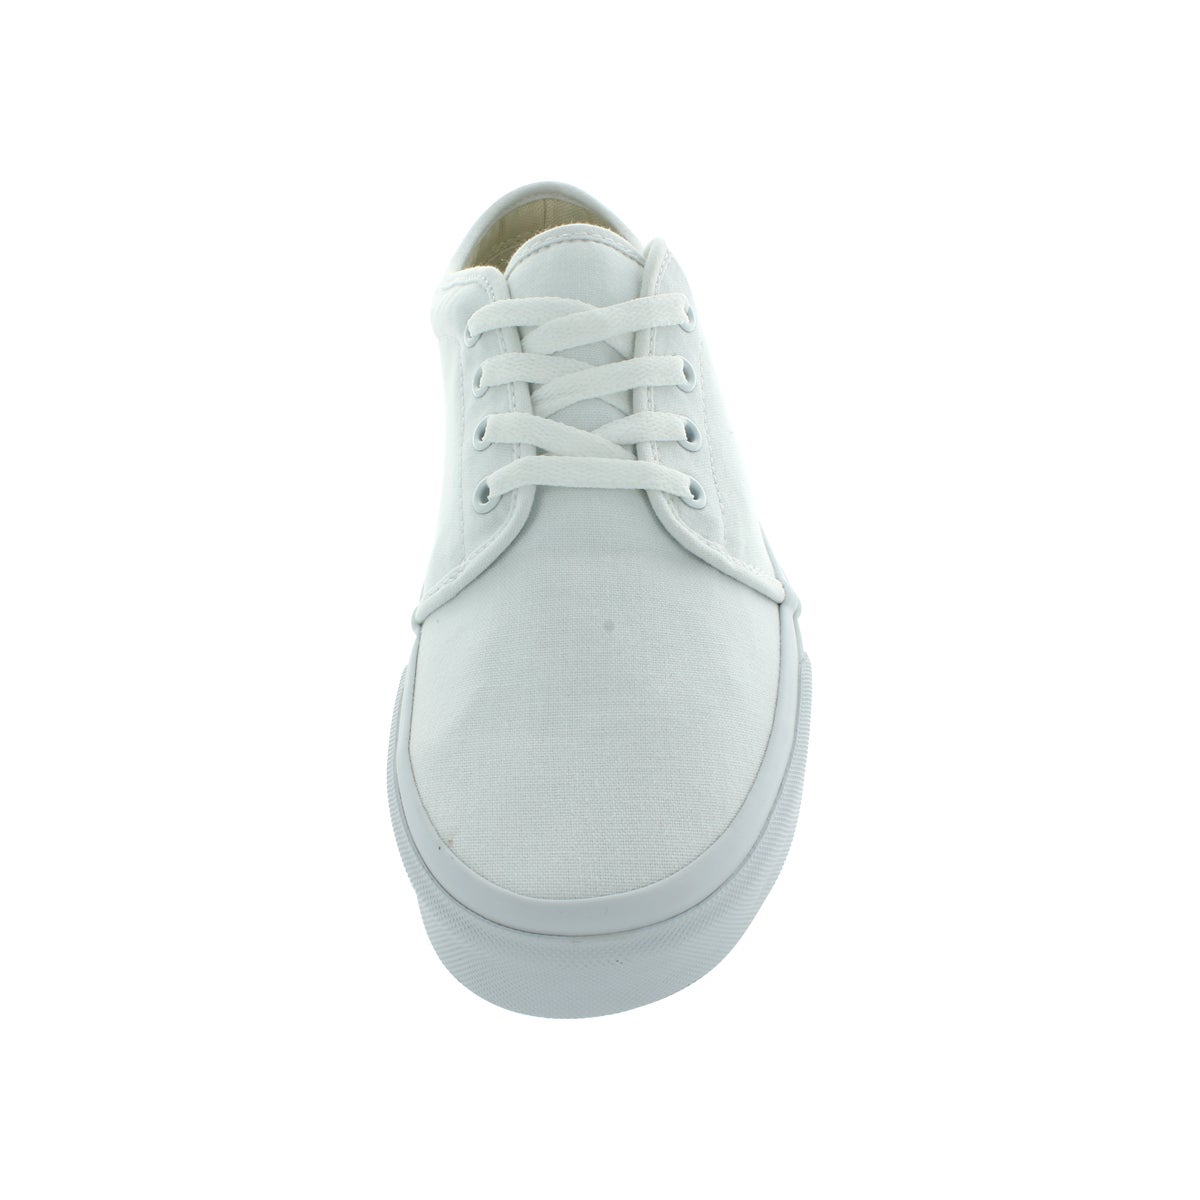 67548affa5 Shop Vans 106 Vulcanized White Canvas Skate Shoes - Ships To Canada -  Overstock - 12115729